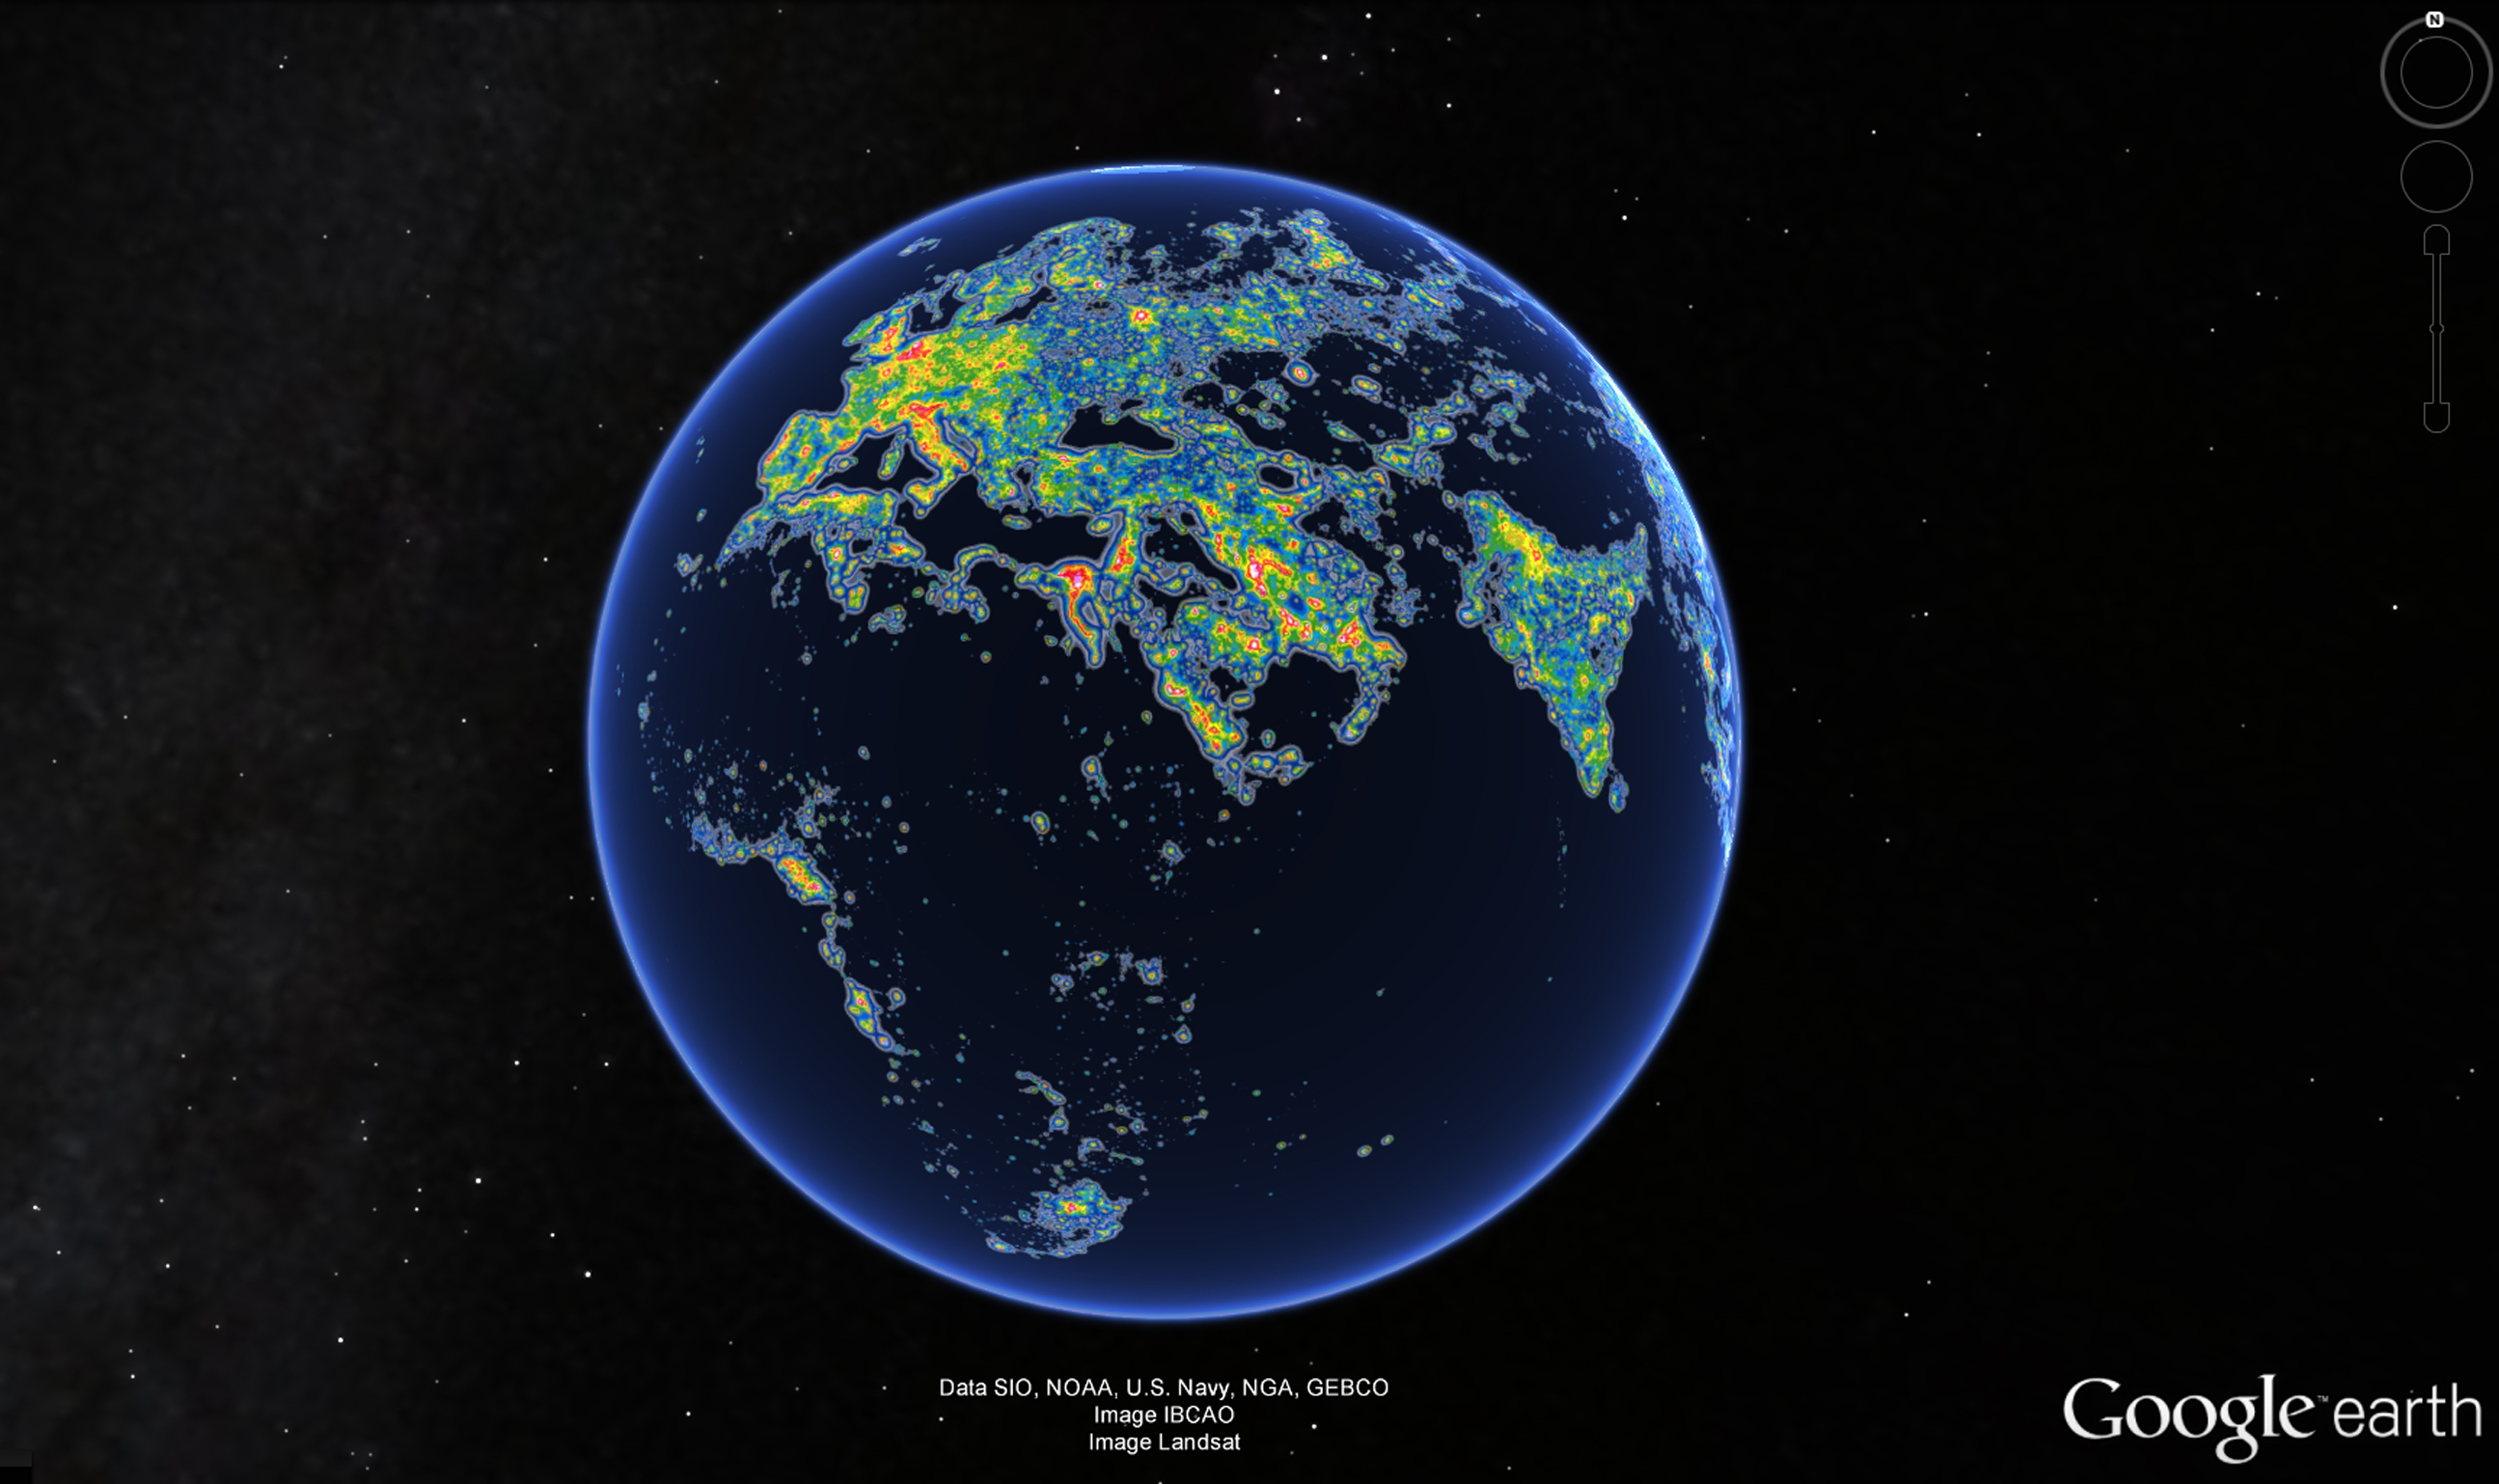 The Middle East and north Africa in the New World Atlas of Artificial Sky Brightness, as seen in Google Earth. Source: Science